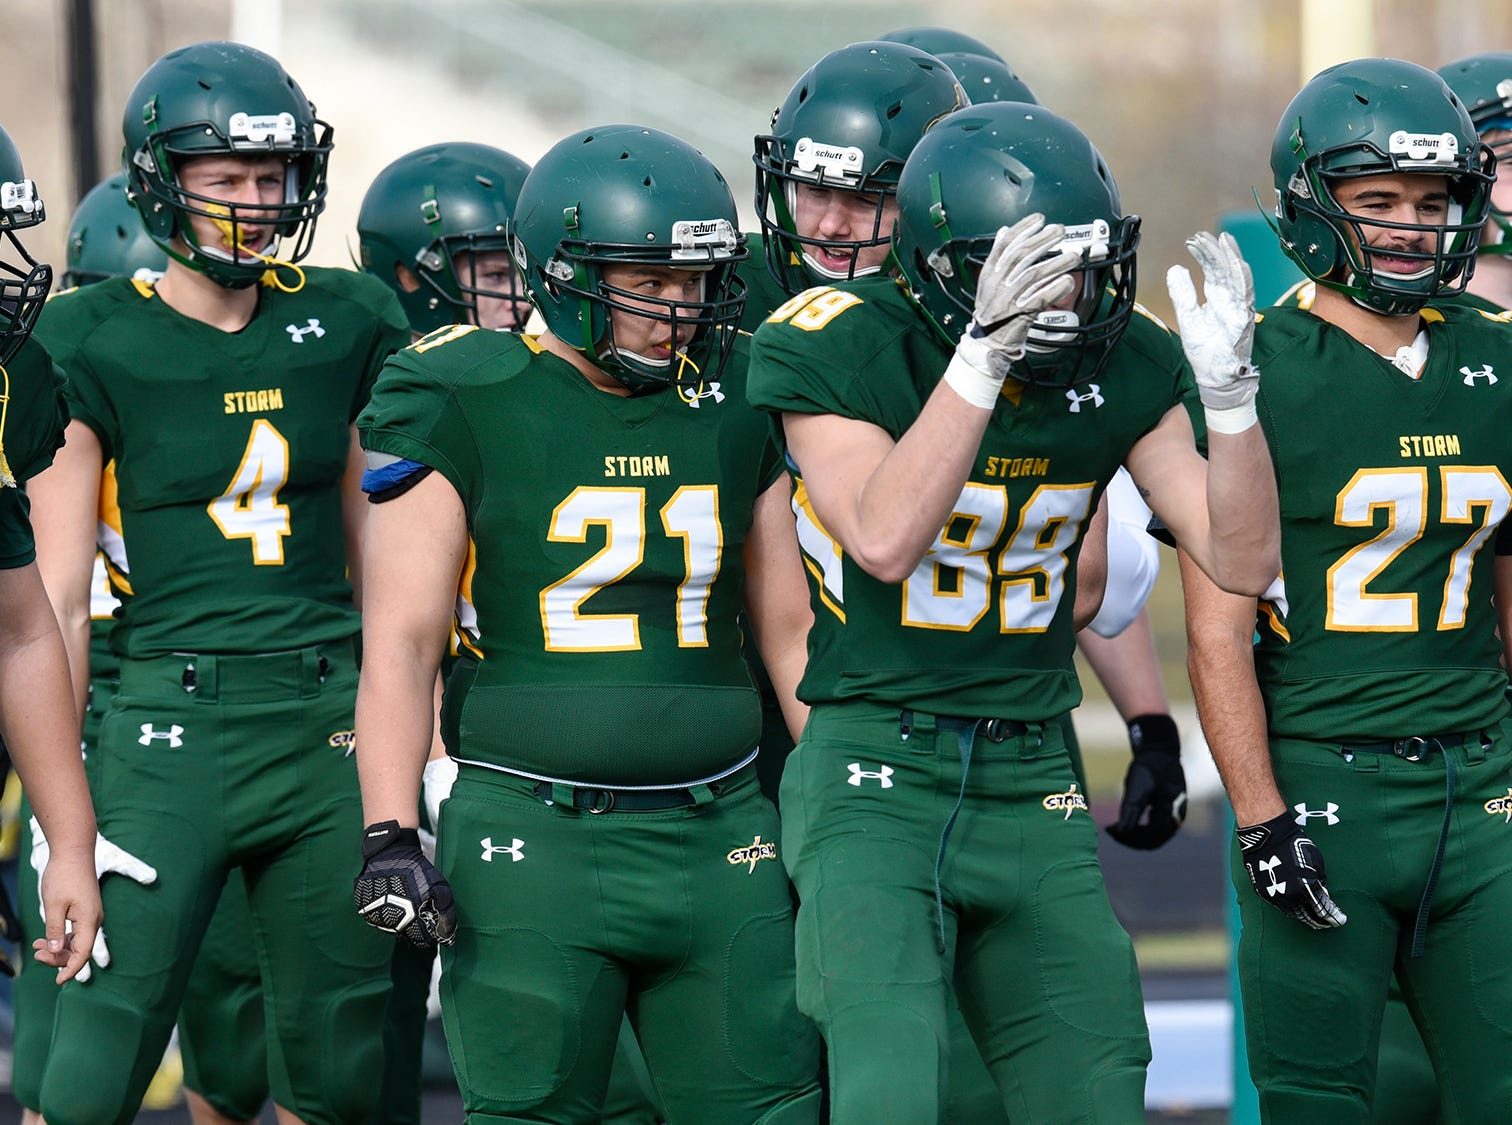 Sauk Rapids players take the field Saturday, Oct. 27, during the Section 6-5A semifinal game in Sauk Rapids.